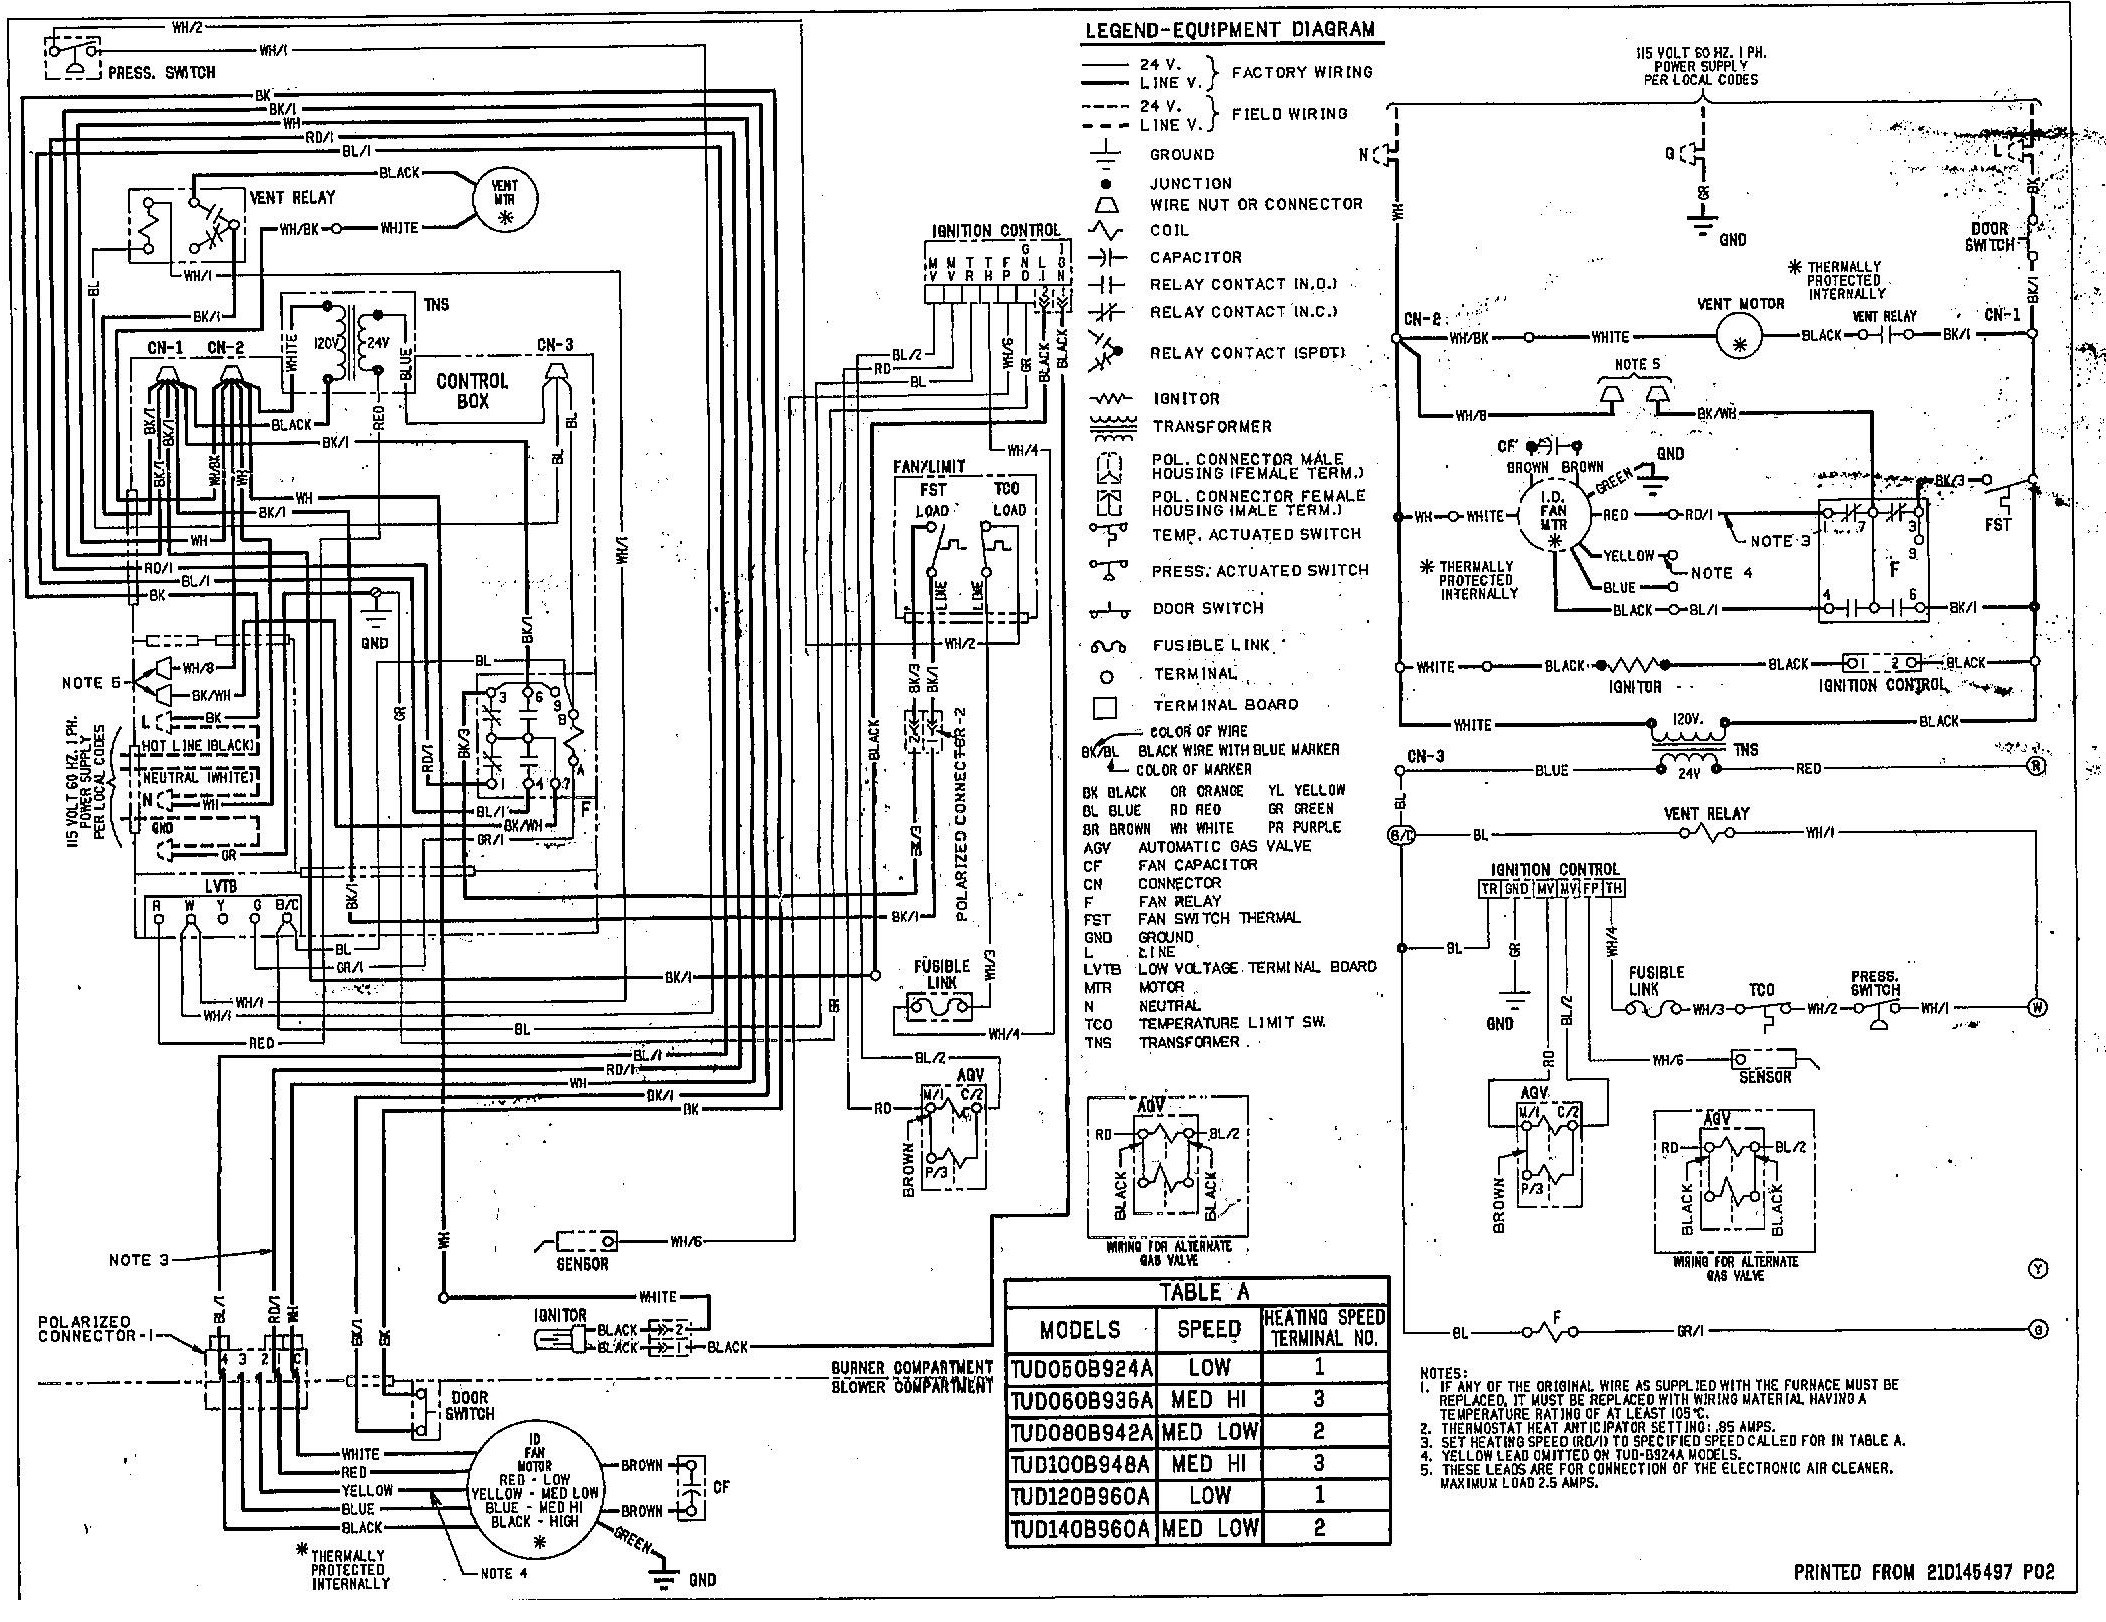 Reznor Heater Wiring Diagram Gallery Wiring Diagram Sample